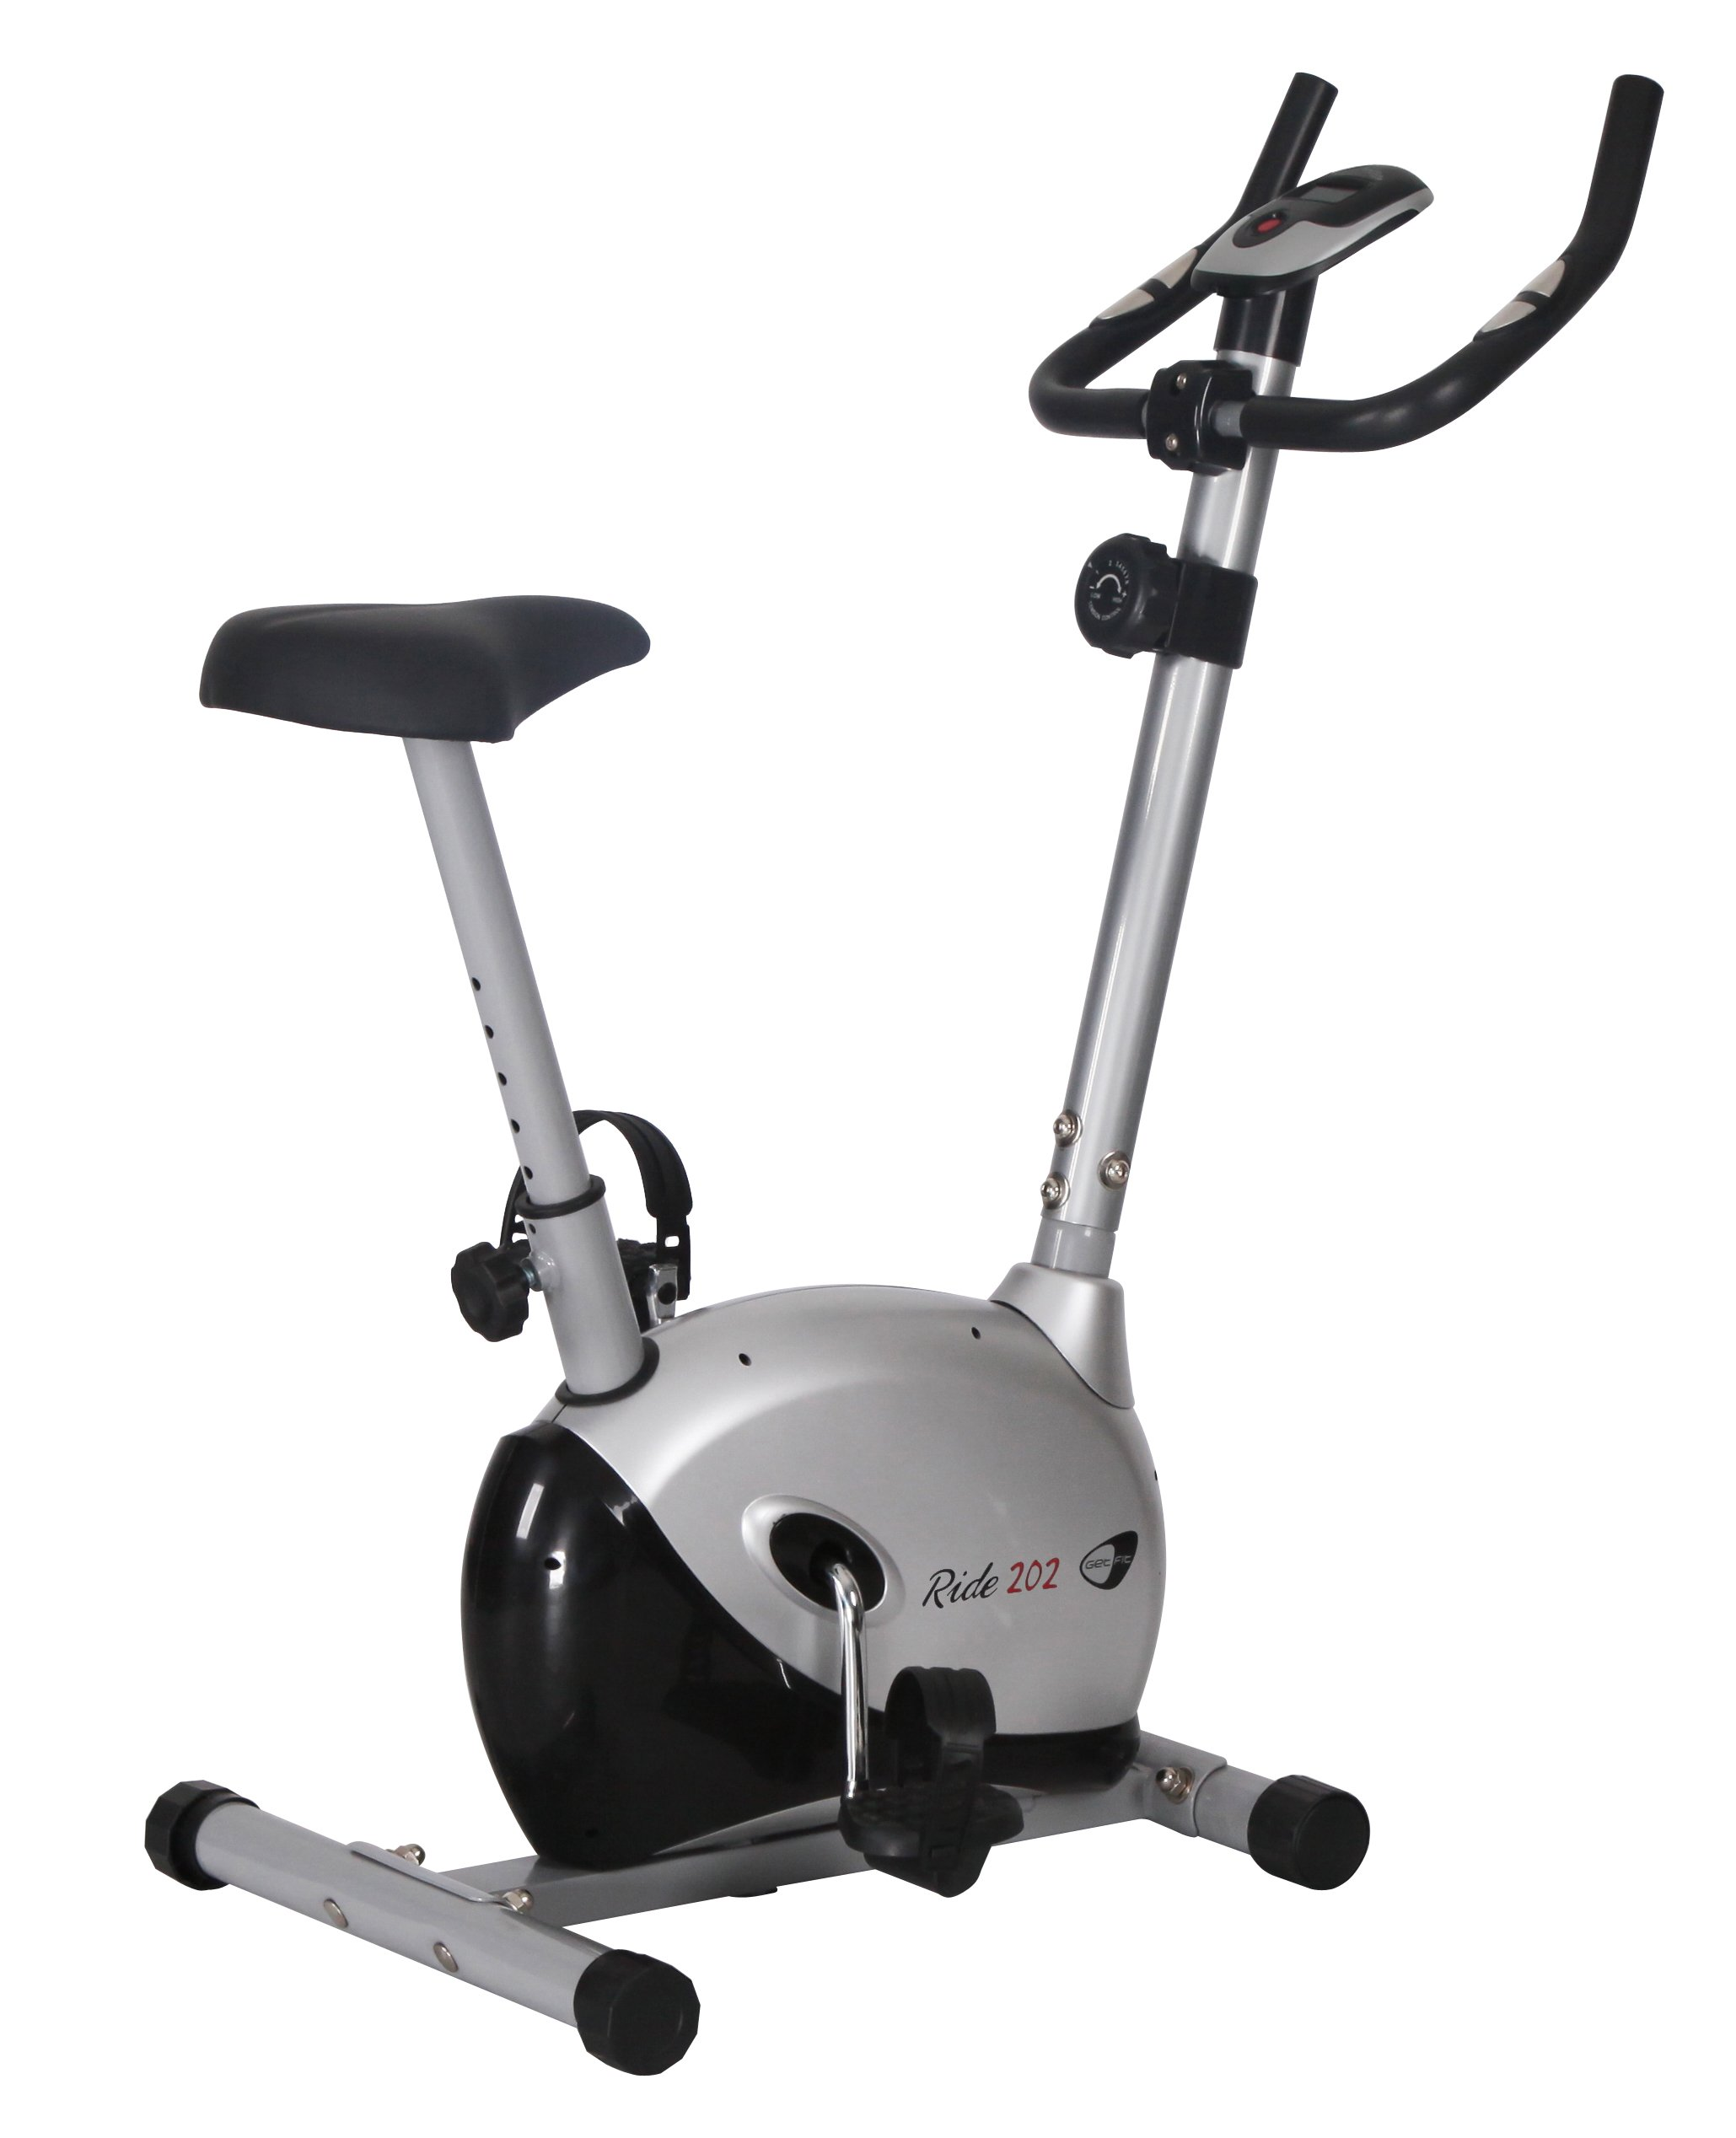 Cyclette RIDE 202 GetFit: Amazon.es: Deportes y aire libre